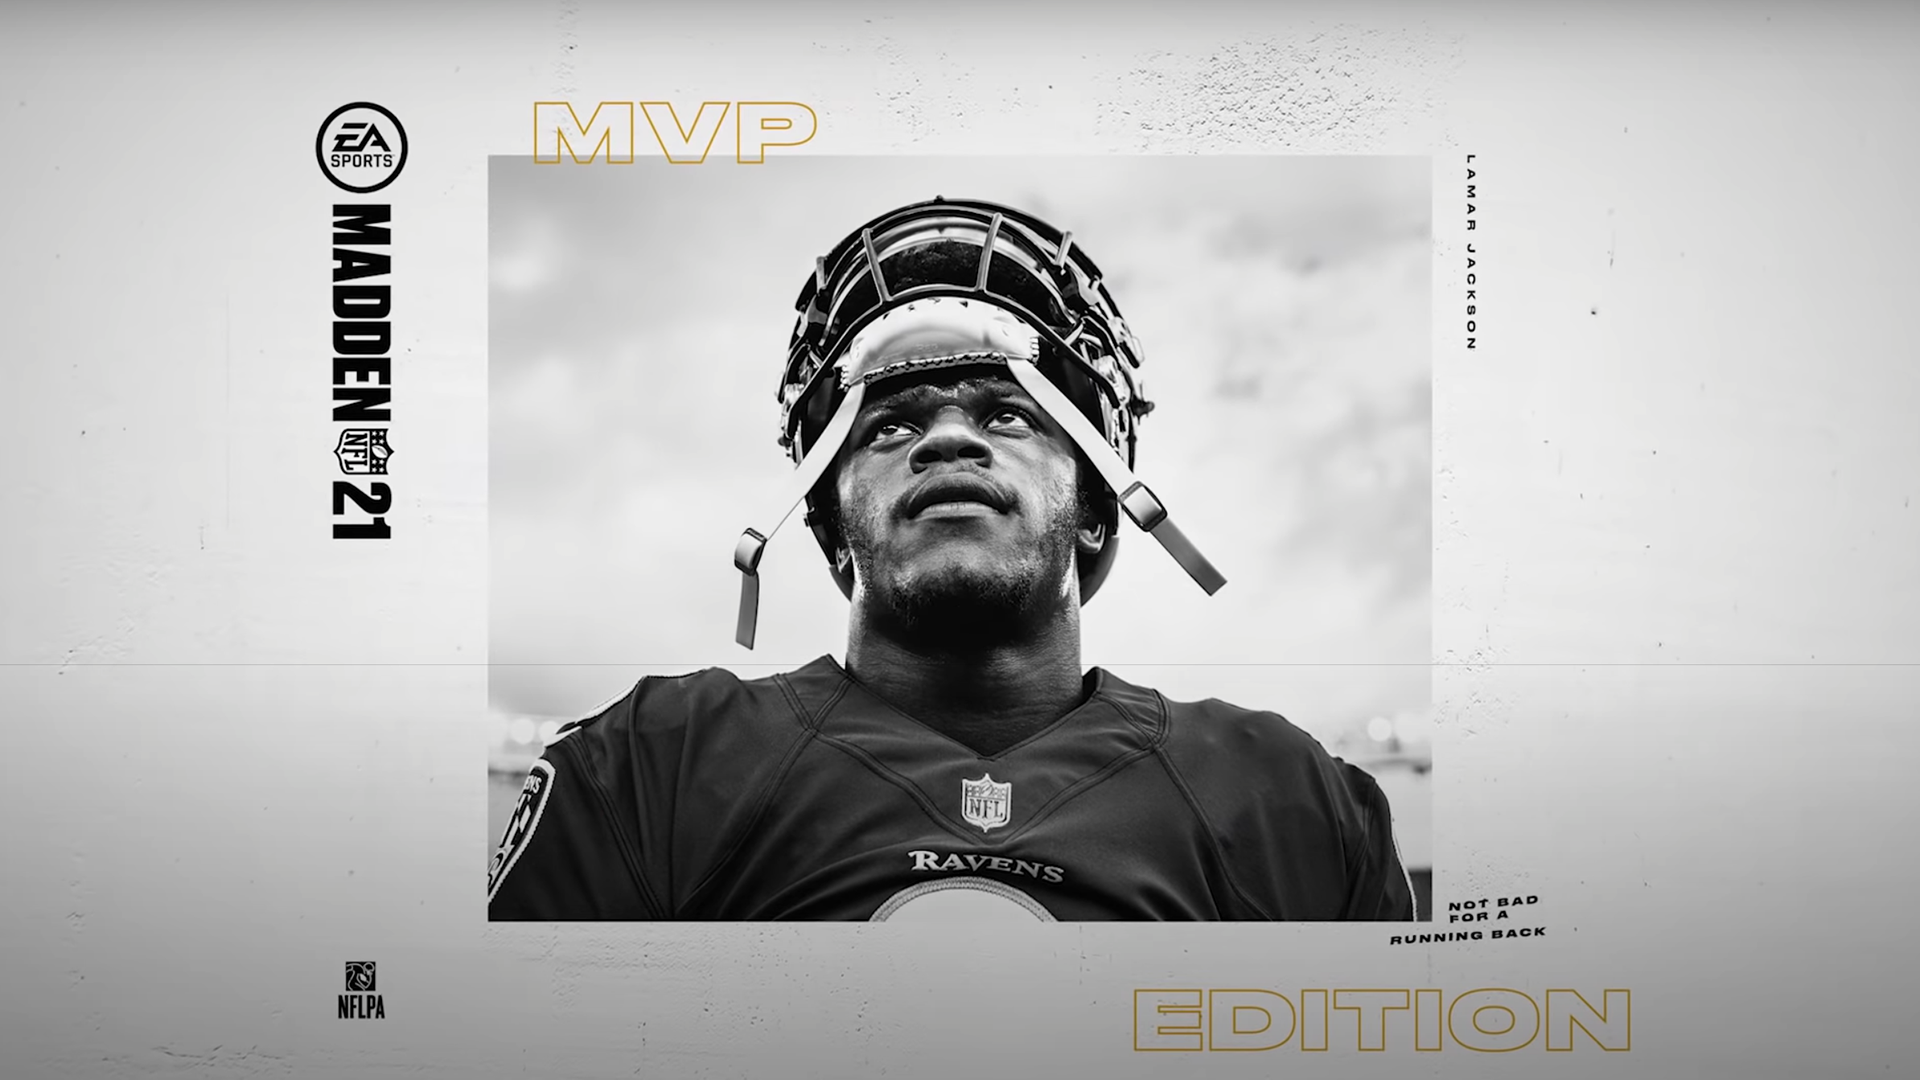 Madden 21 release date new features & more things we learned from EA Sports reveal trailer  EA Sports released its Madden NFL 21 official reveal trailer and we learned a lot about the new game.  The trailer focuses heavily on Lamar Jackson which makes sense considering hes the cover athlete. But it also lets us in on a few key gamplay elements the Madden team has been working on this offseason. Well through them all individually below but it seems as if EA Sports is really making an effort to gi